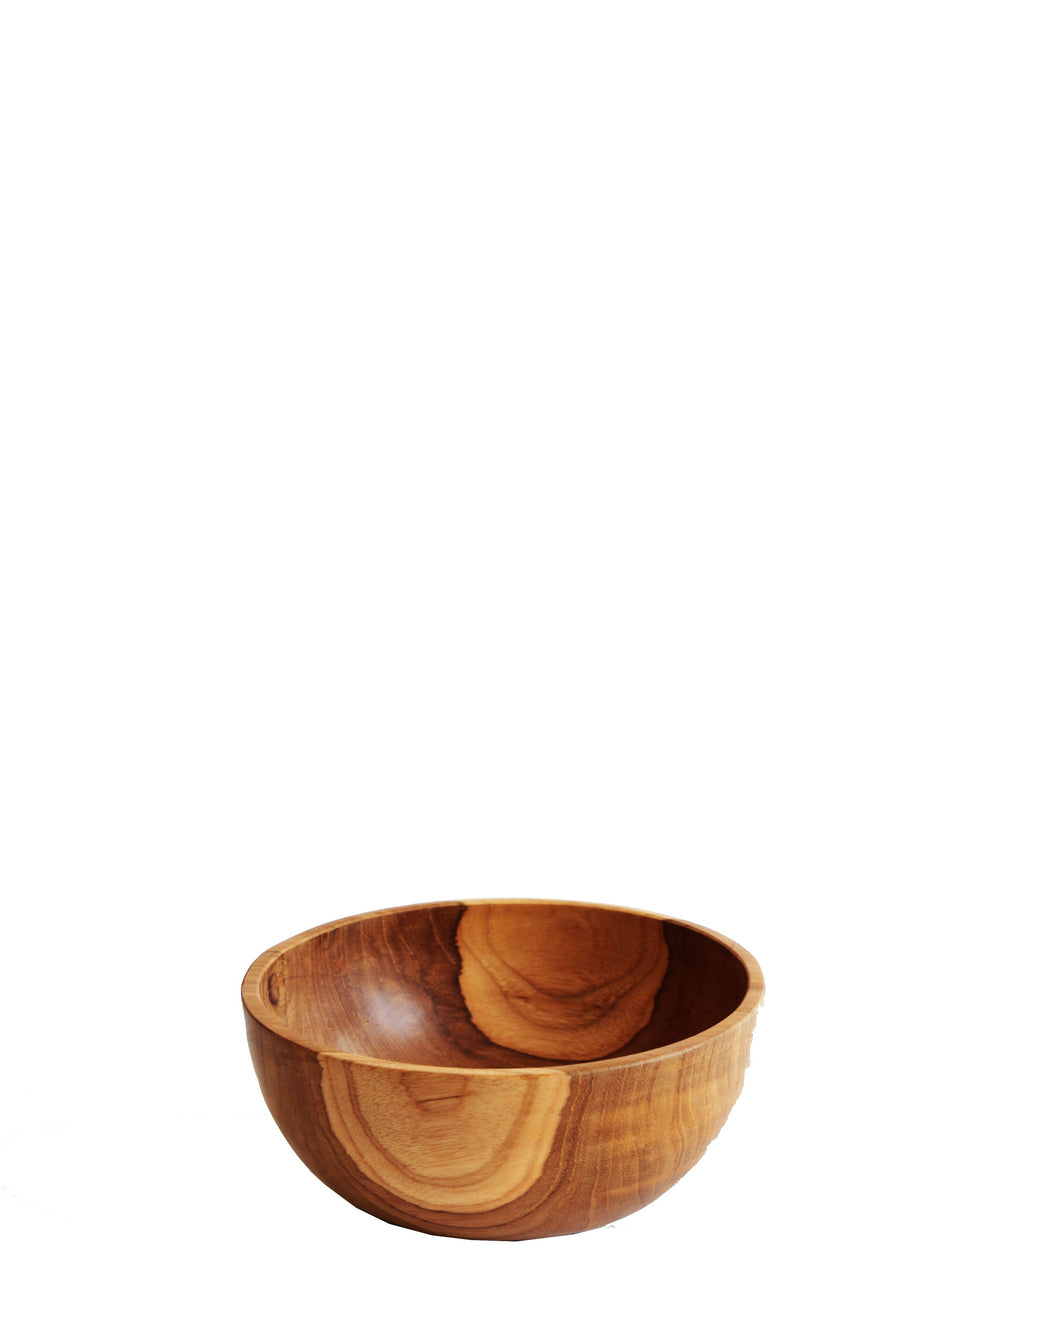 TEAK WOOD BOWL Medium